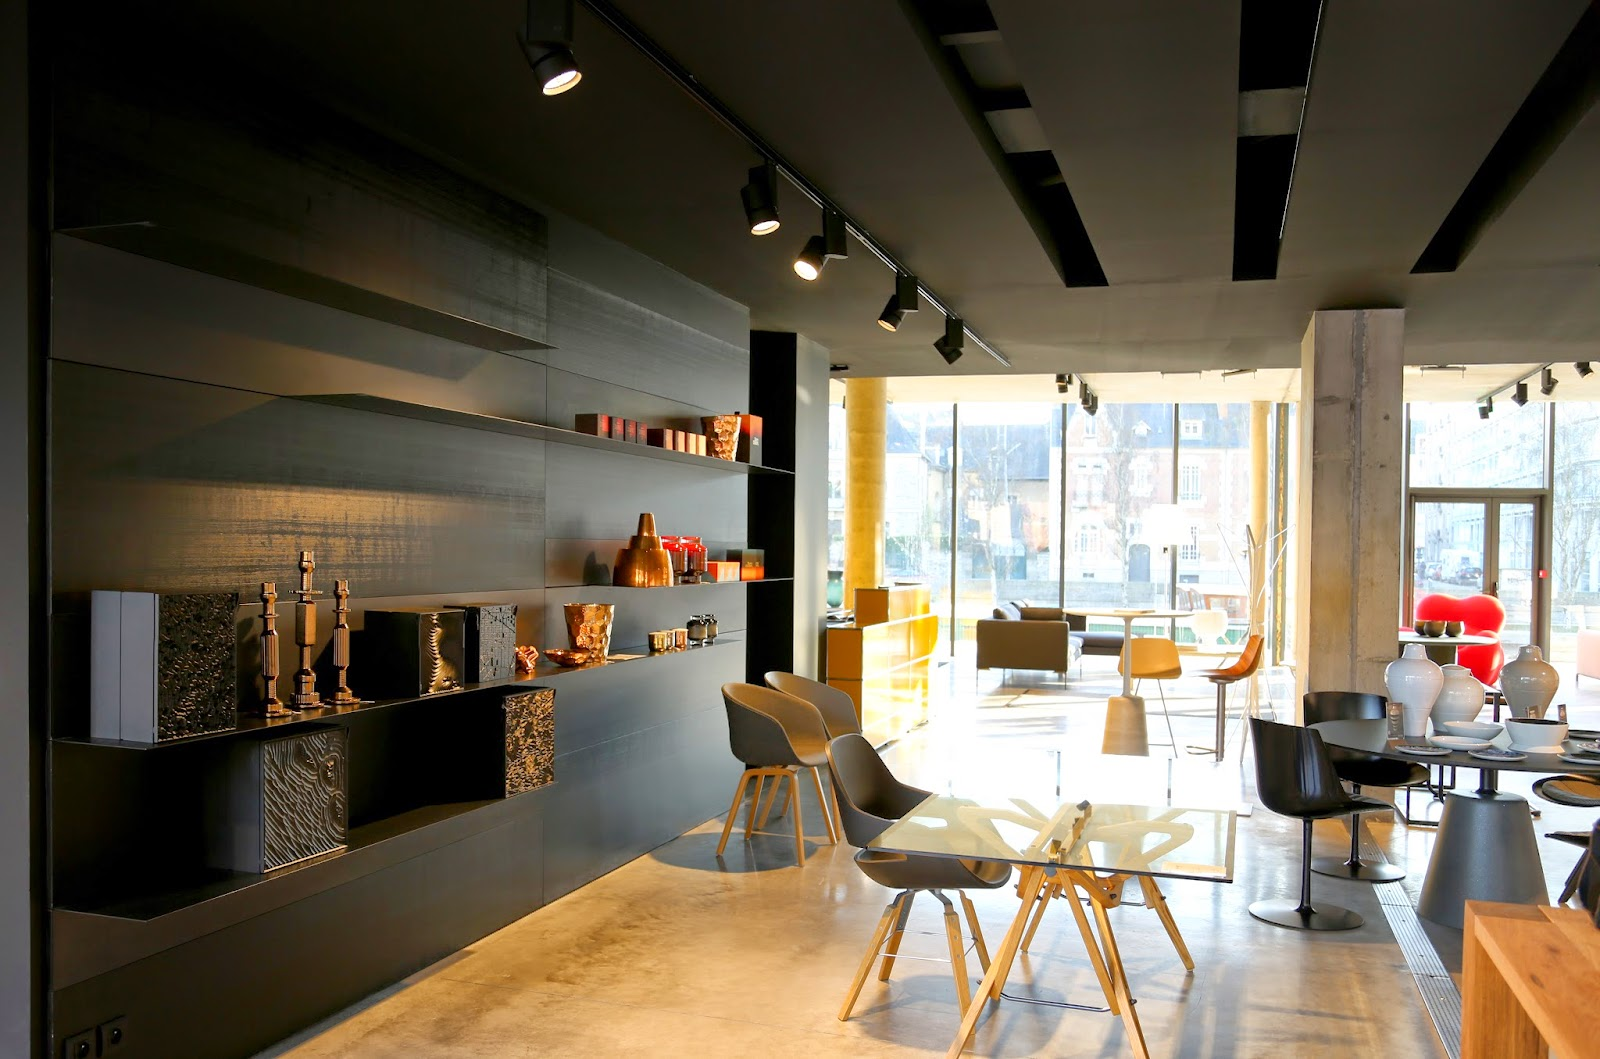 mdf italia moooi tom dixon forma design rennes agence at. Black Bedroom Furniture Sets. Home Design Ideas